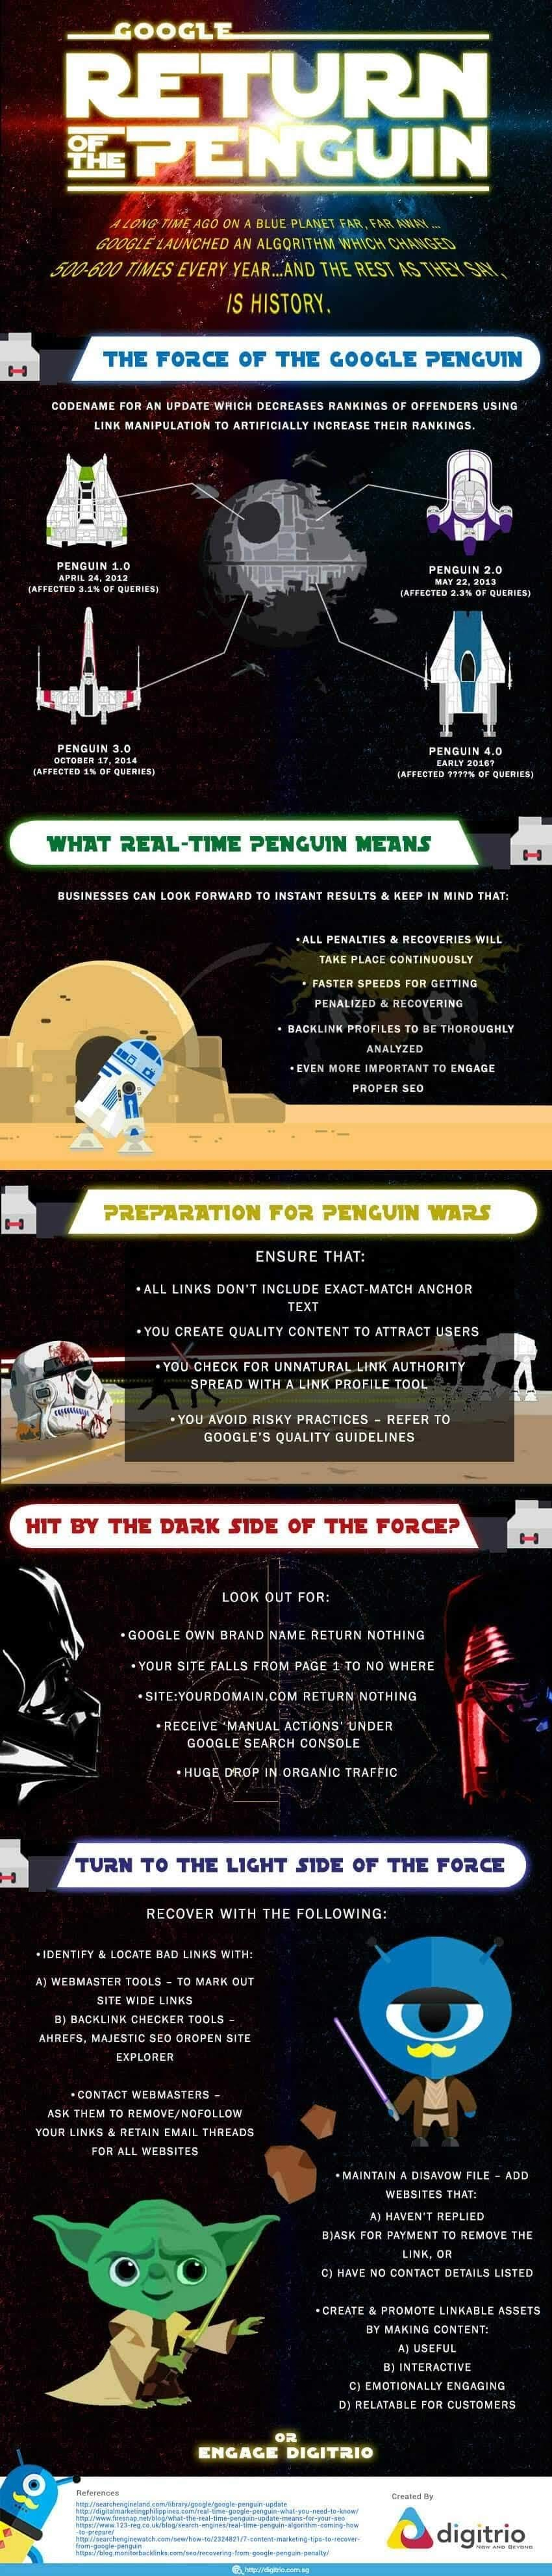 Ultimate Guide to Google Penguin 4.0 #infographic